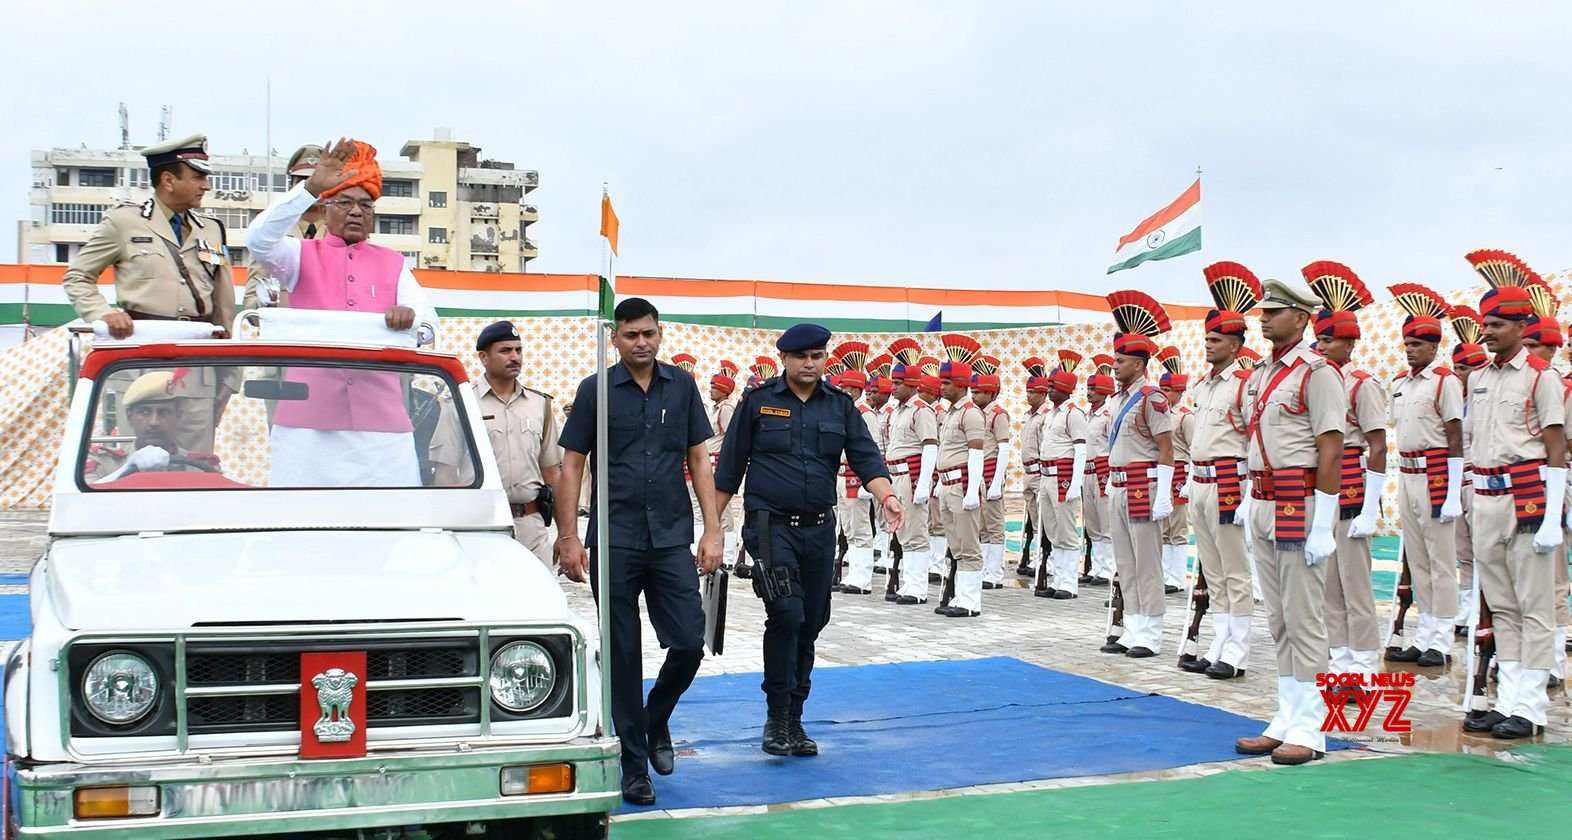 Faridabad: Haryana Governor during 73rd Independence Day celebrations #Gallery